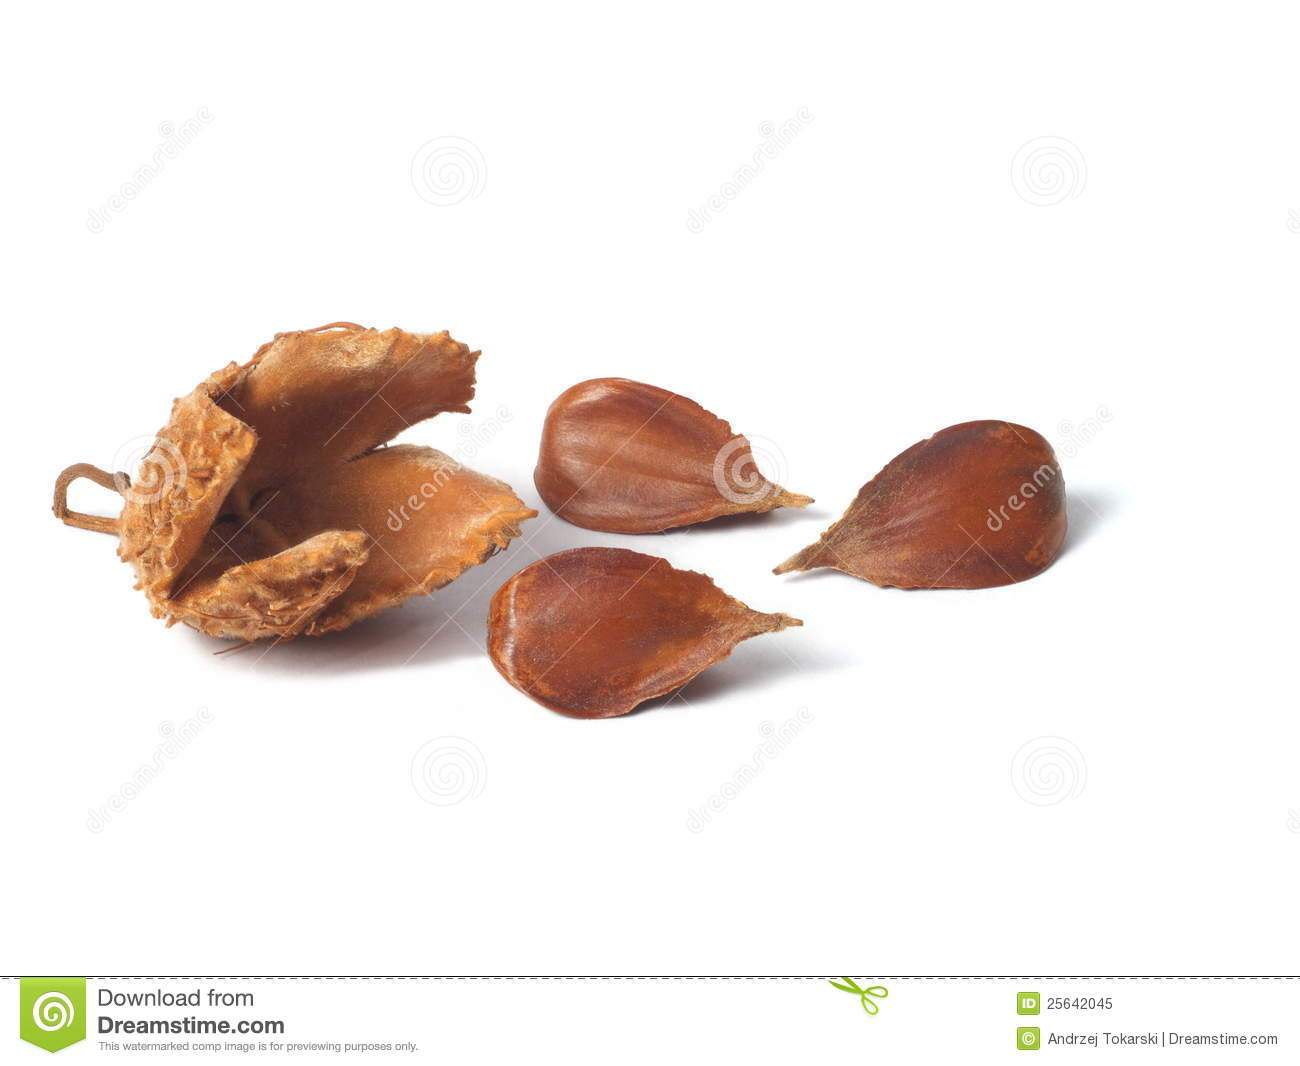 Common Beech Nuts Royalty Free Stock Photo - Image: 25642045